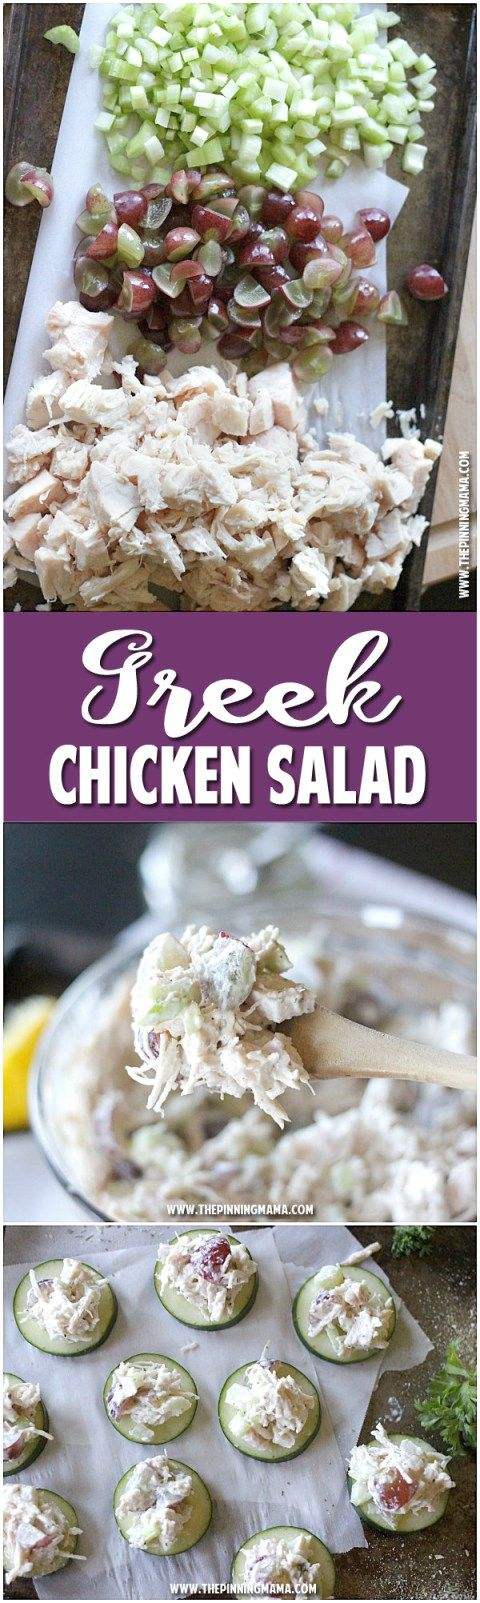 Greek Chicken Salad Recipe (Paleo, Whole30 Compliant)